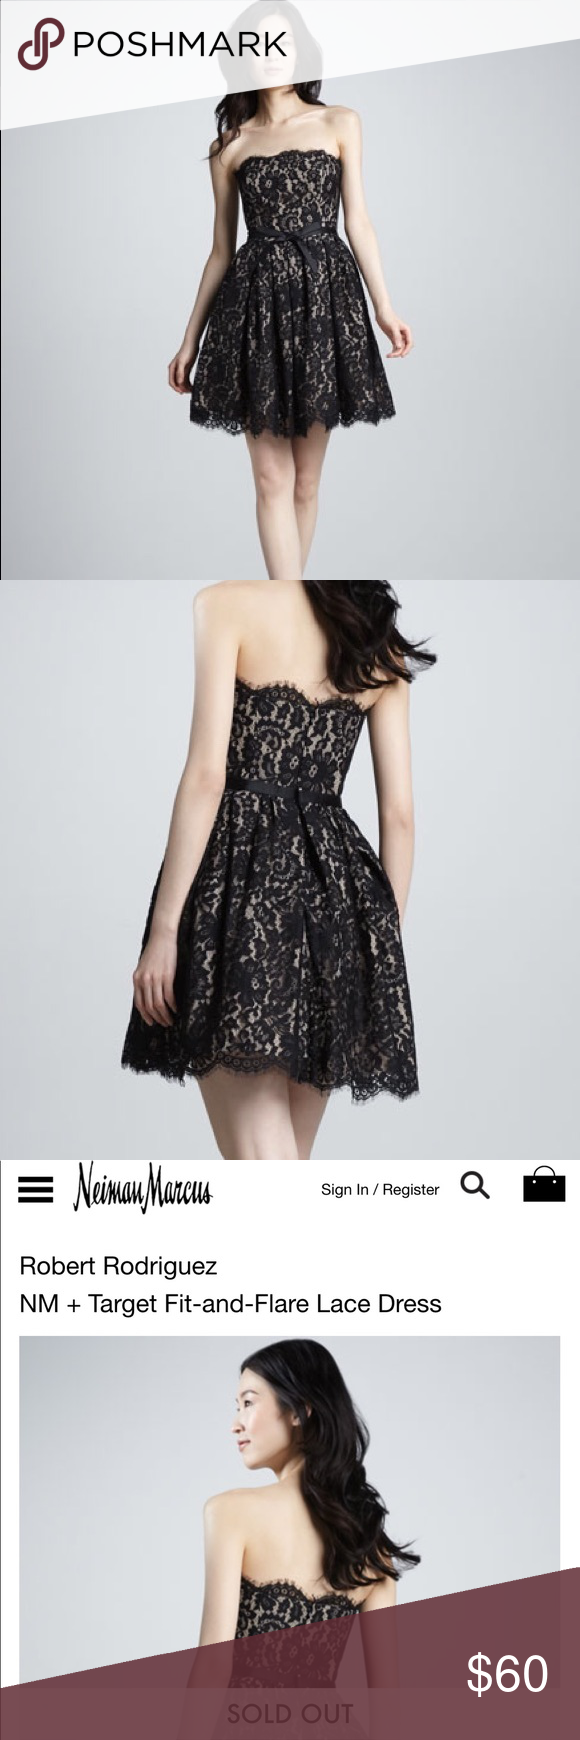 Neiman Marcus And Target Cocktail Dress Dresses Neiman Marcus Dresses Cocktail Dress [ 1740 x 580 Pixel ]